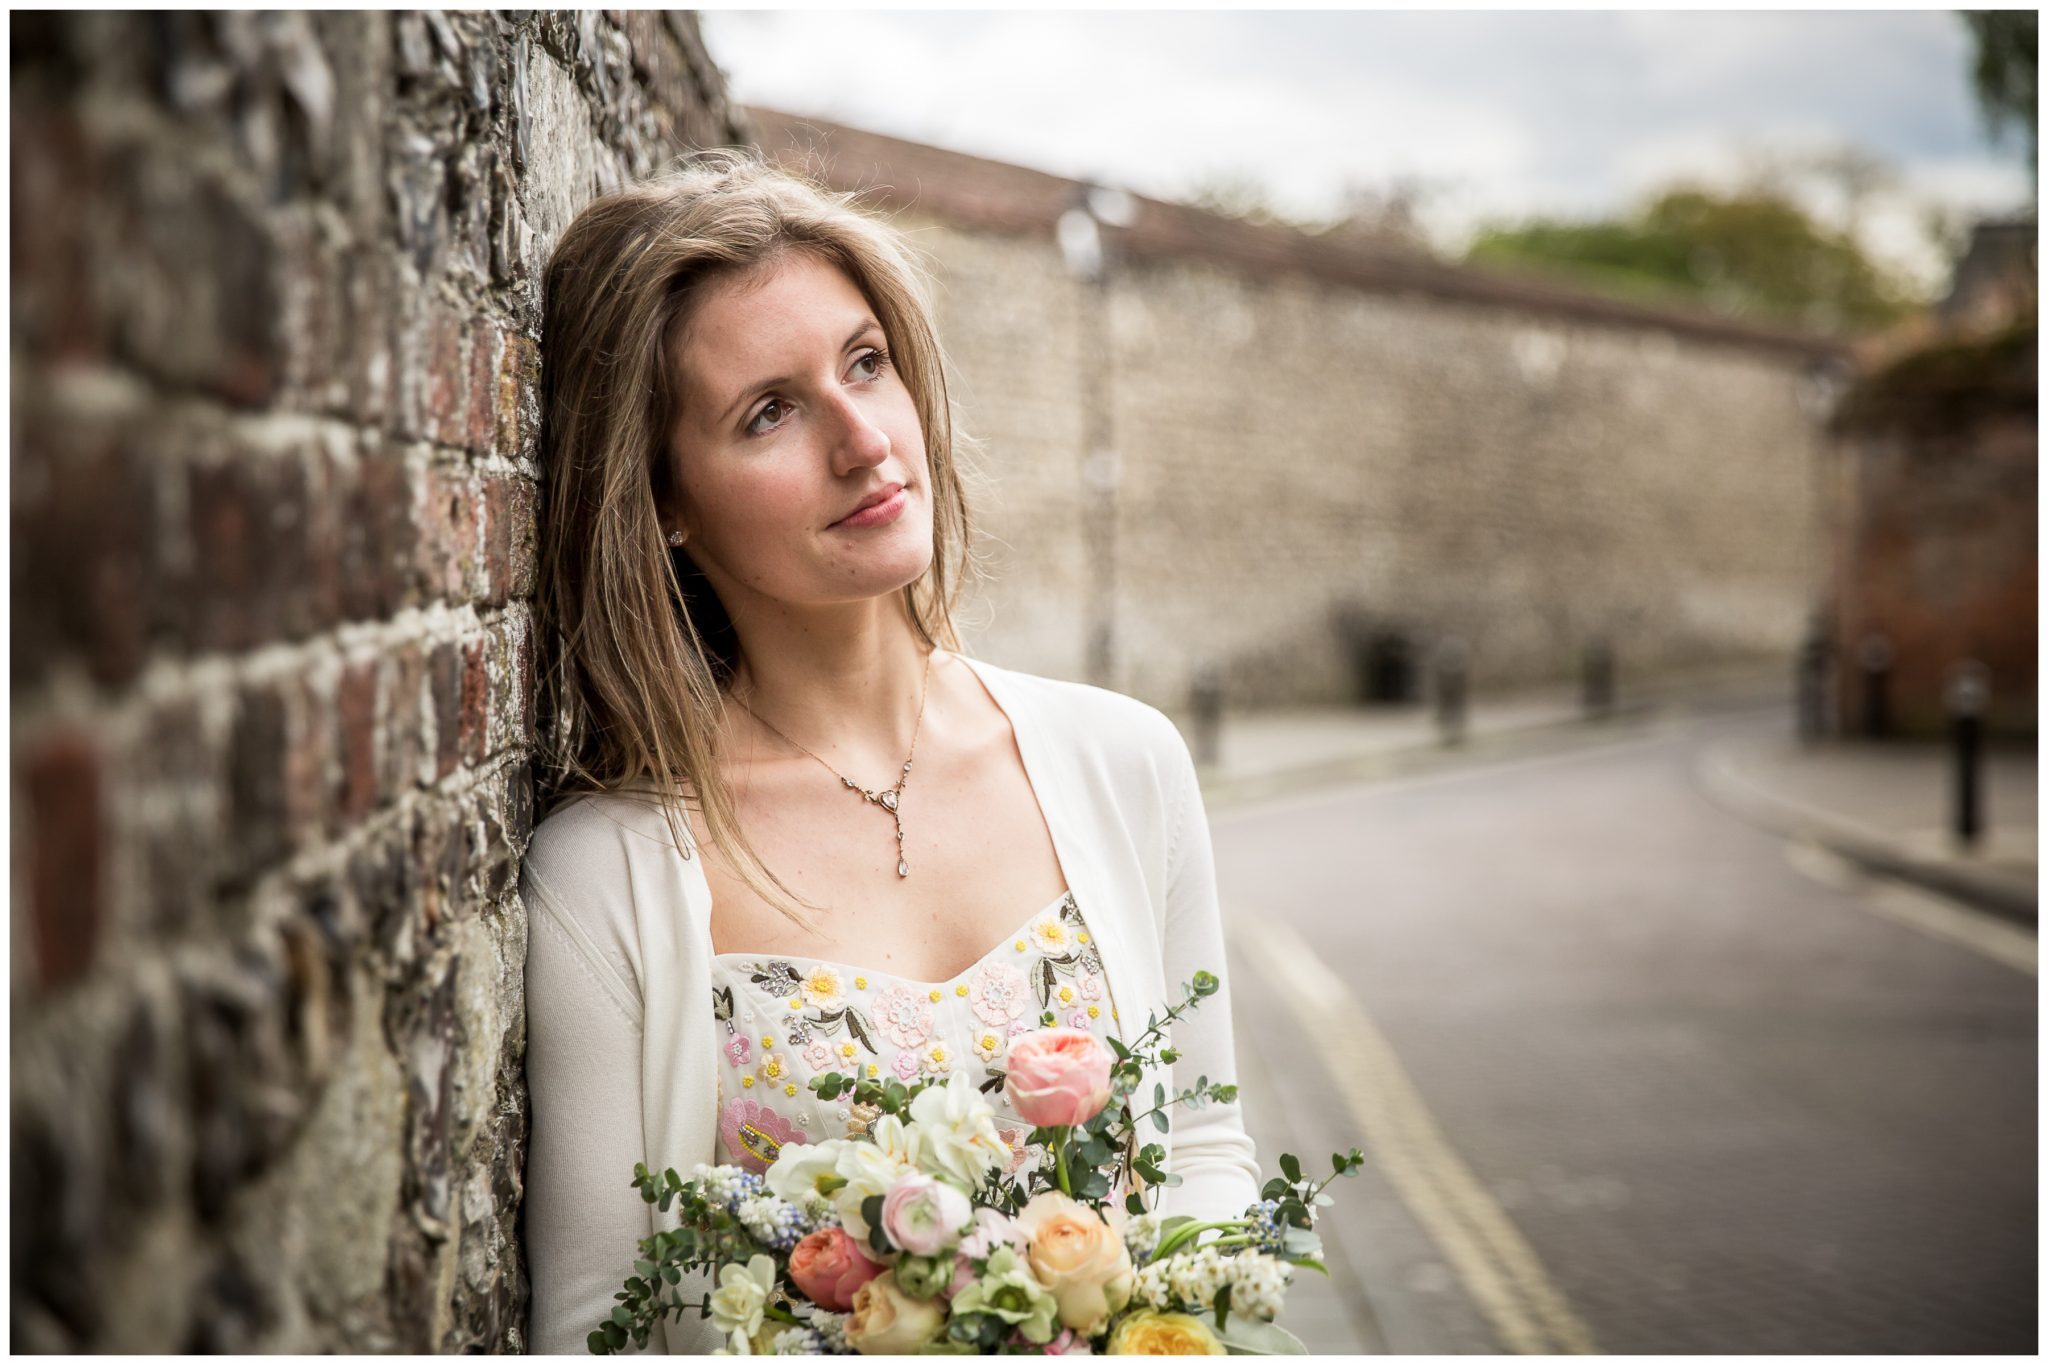 Bridal portrait leaning against wall